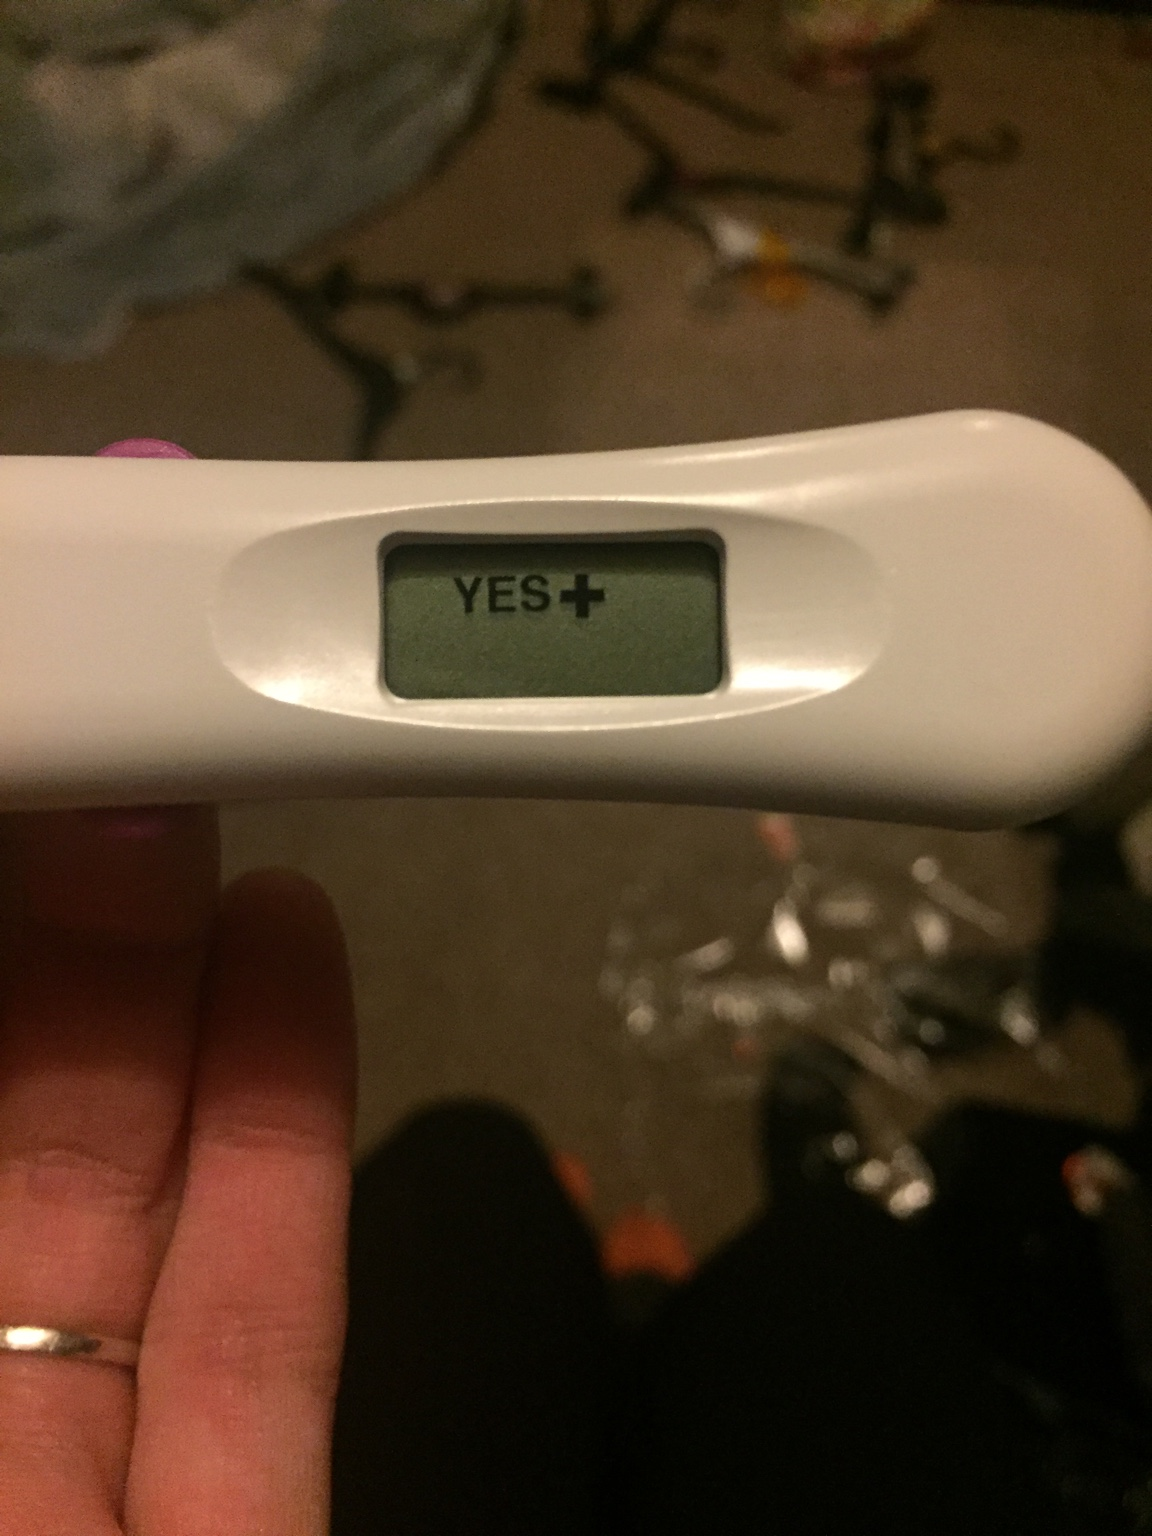 how to make a fake positive pregnancy test